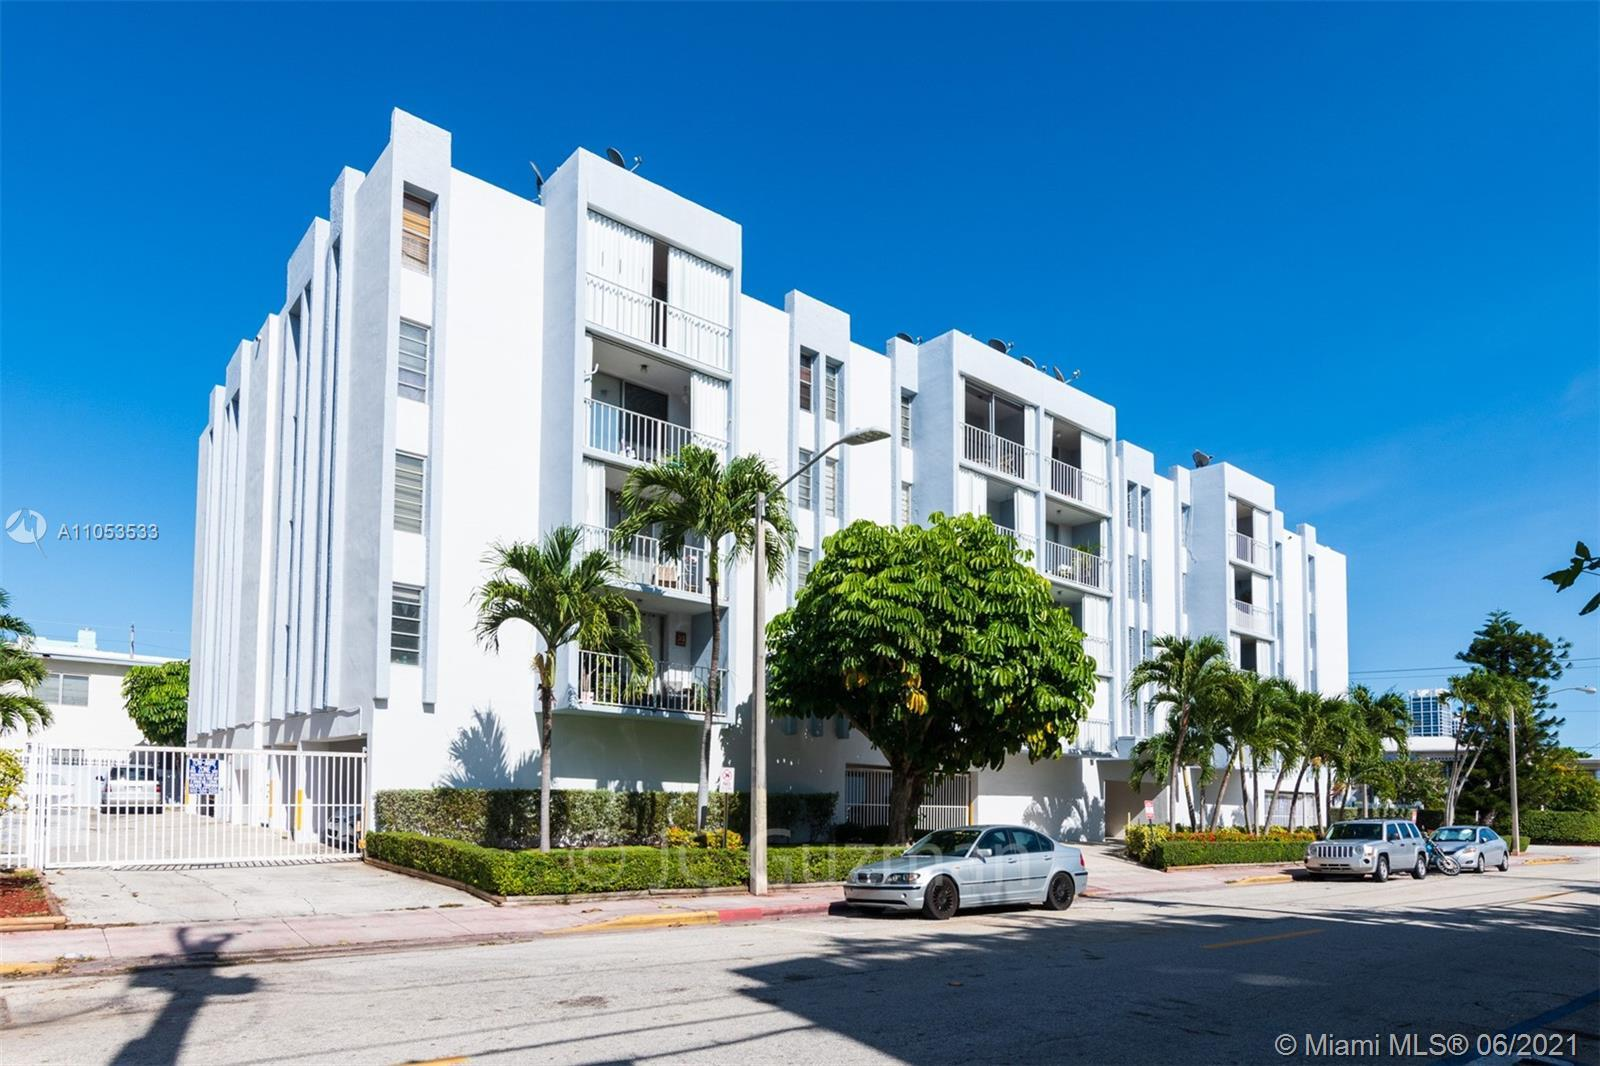 Want to move to Miami Beach? Here is a great opportunity – great value and amazing location on the b